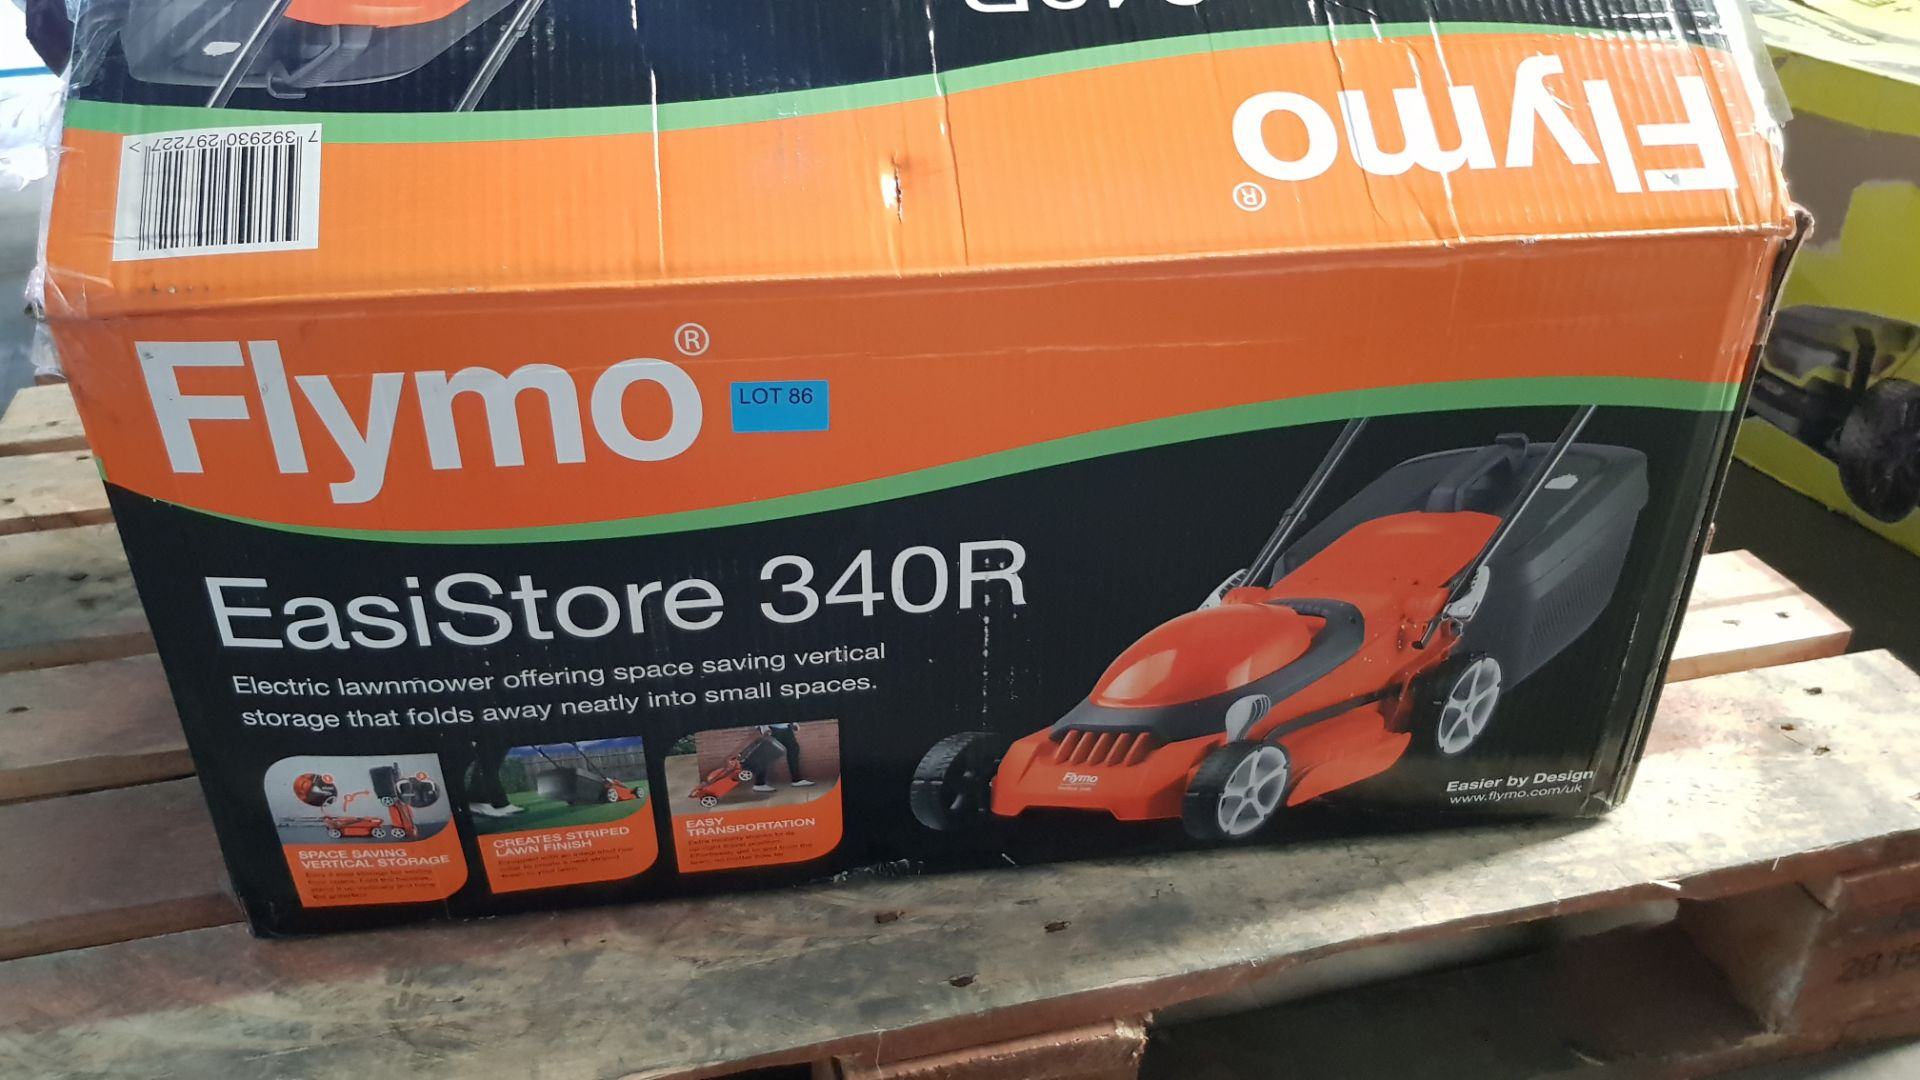 (P3) 1x Flymo EasiStore 340R. RRP £115.00. (Damaged Box – Contents Appear Clean, Unused). - Image 3 of 5